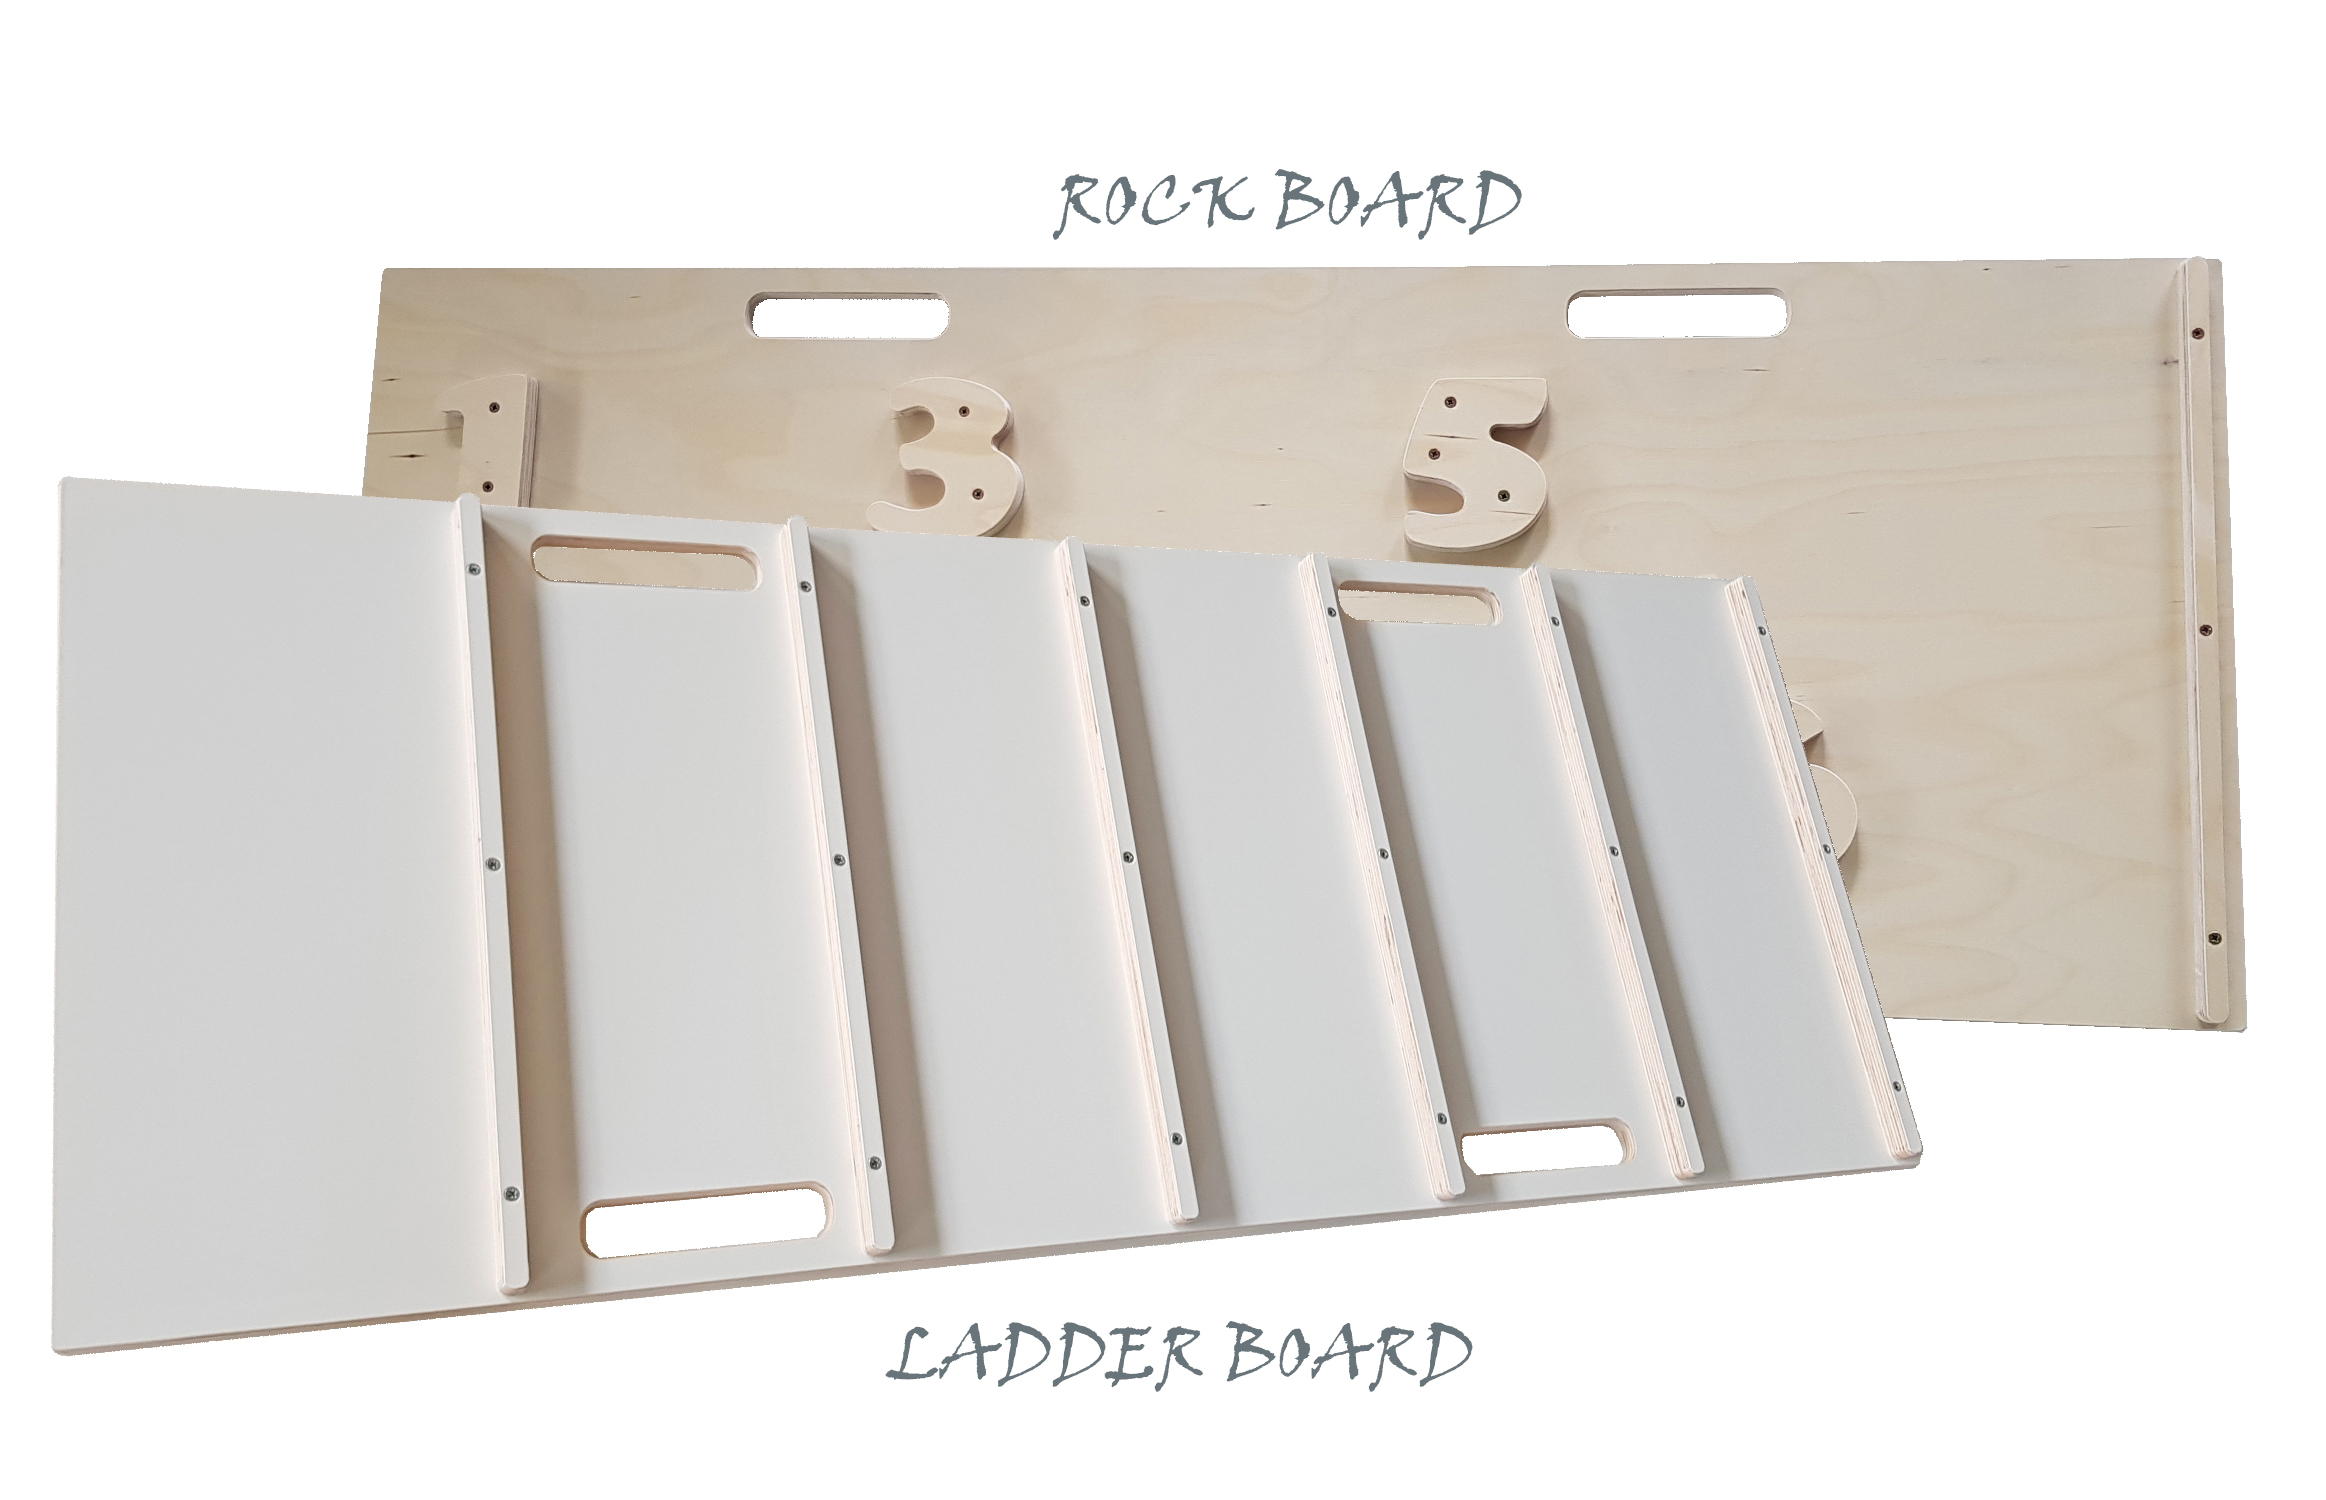 Ladder and rock boards